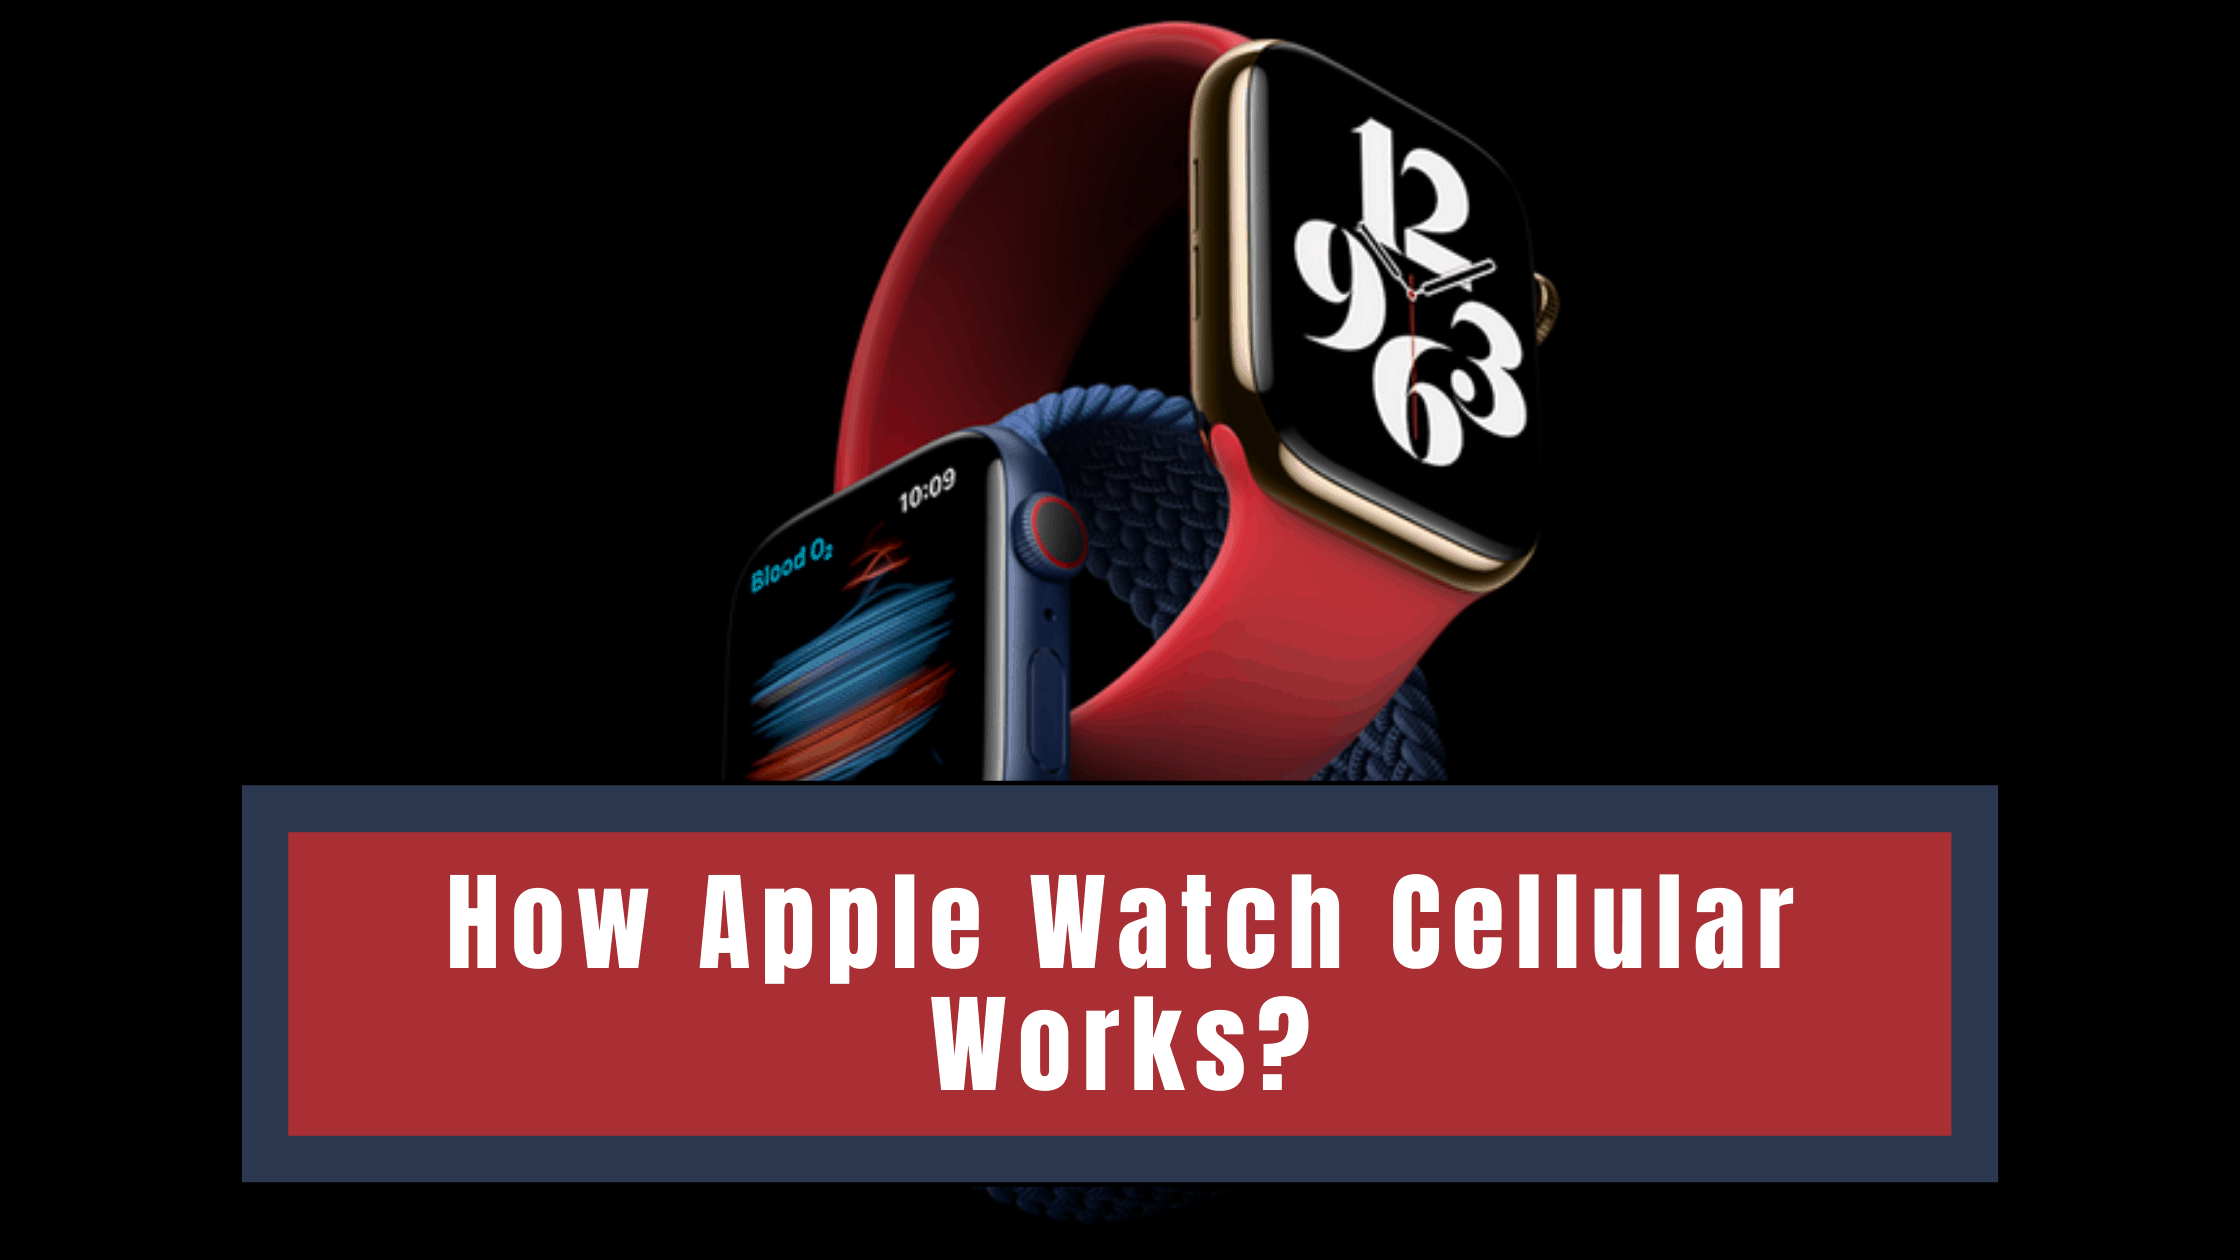 So, find out How Apple Watch Cellular Works!